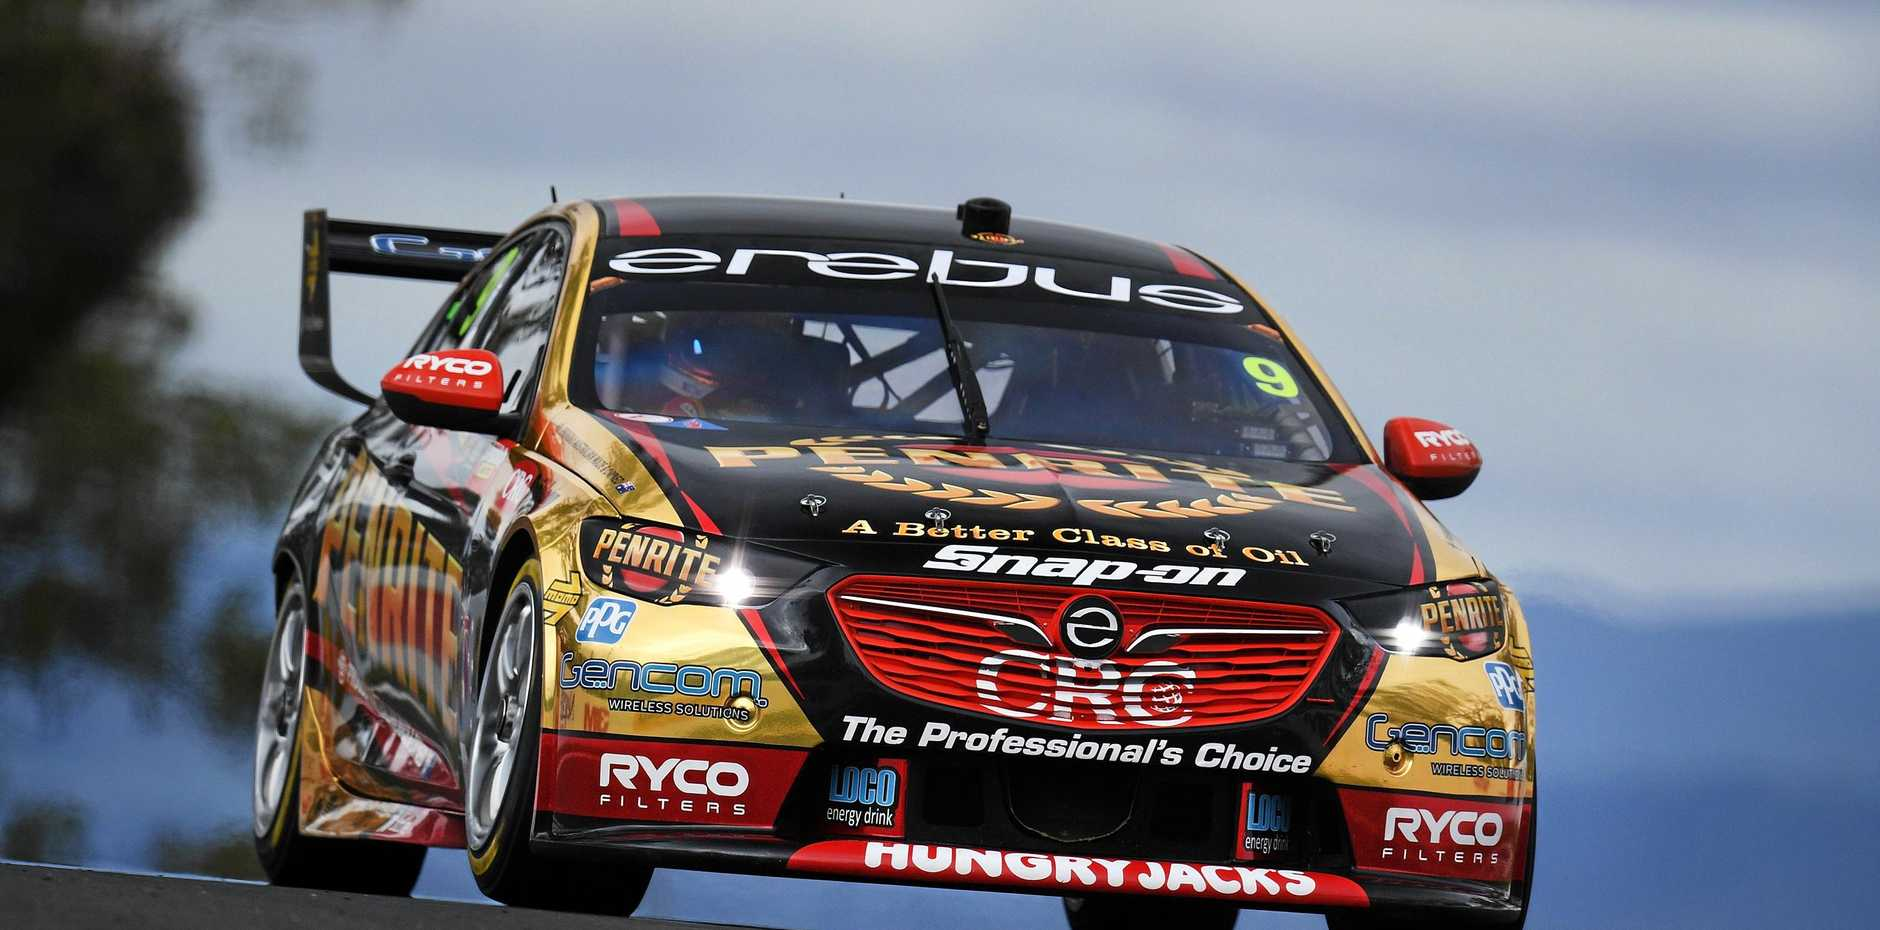 David Reynolds pushes hard in his Erebus Penrite Racing Holden Commodore ZB during qualifying for the Bathurst 1000 on Saturday morning. Picture: Daniel Kalisz/Getty Images